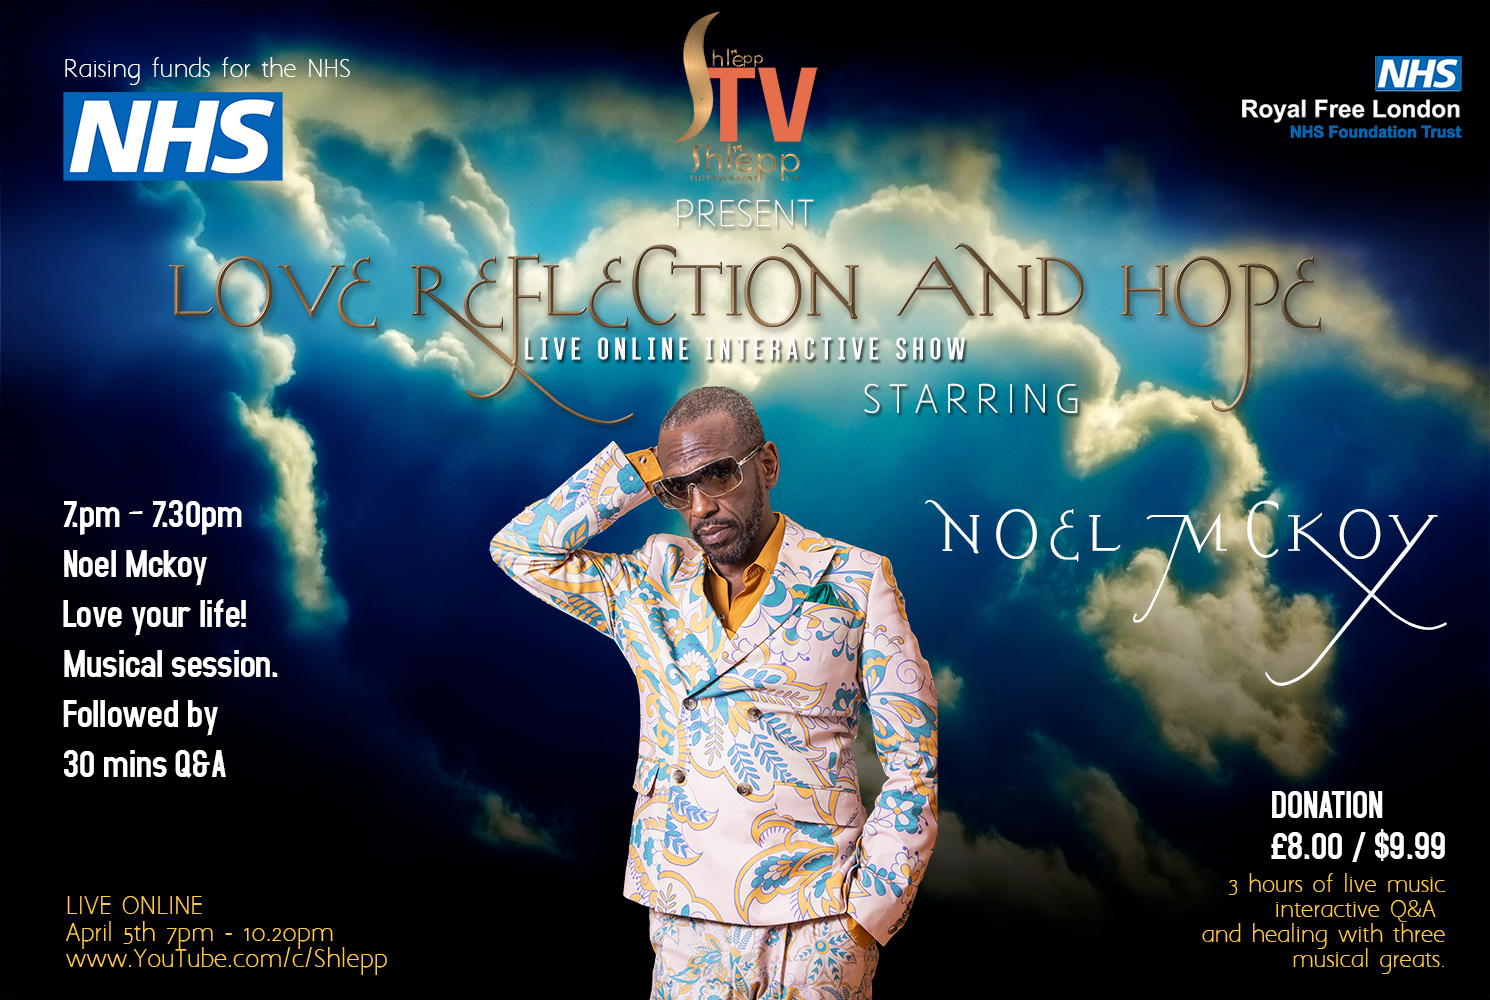 Platinum recording artist Noel Mckoy to perform on Shlepp TV love hope and reflection show for NHS